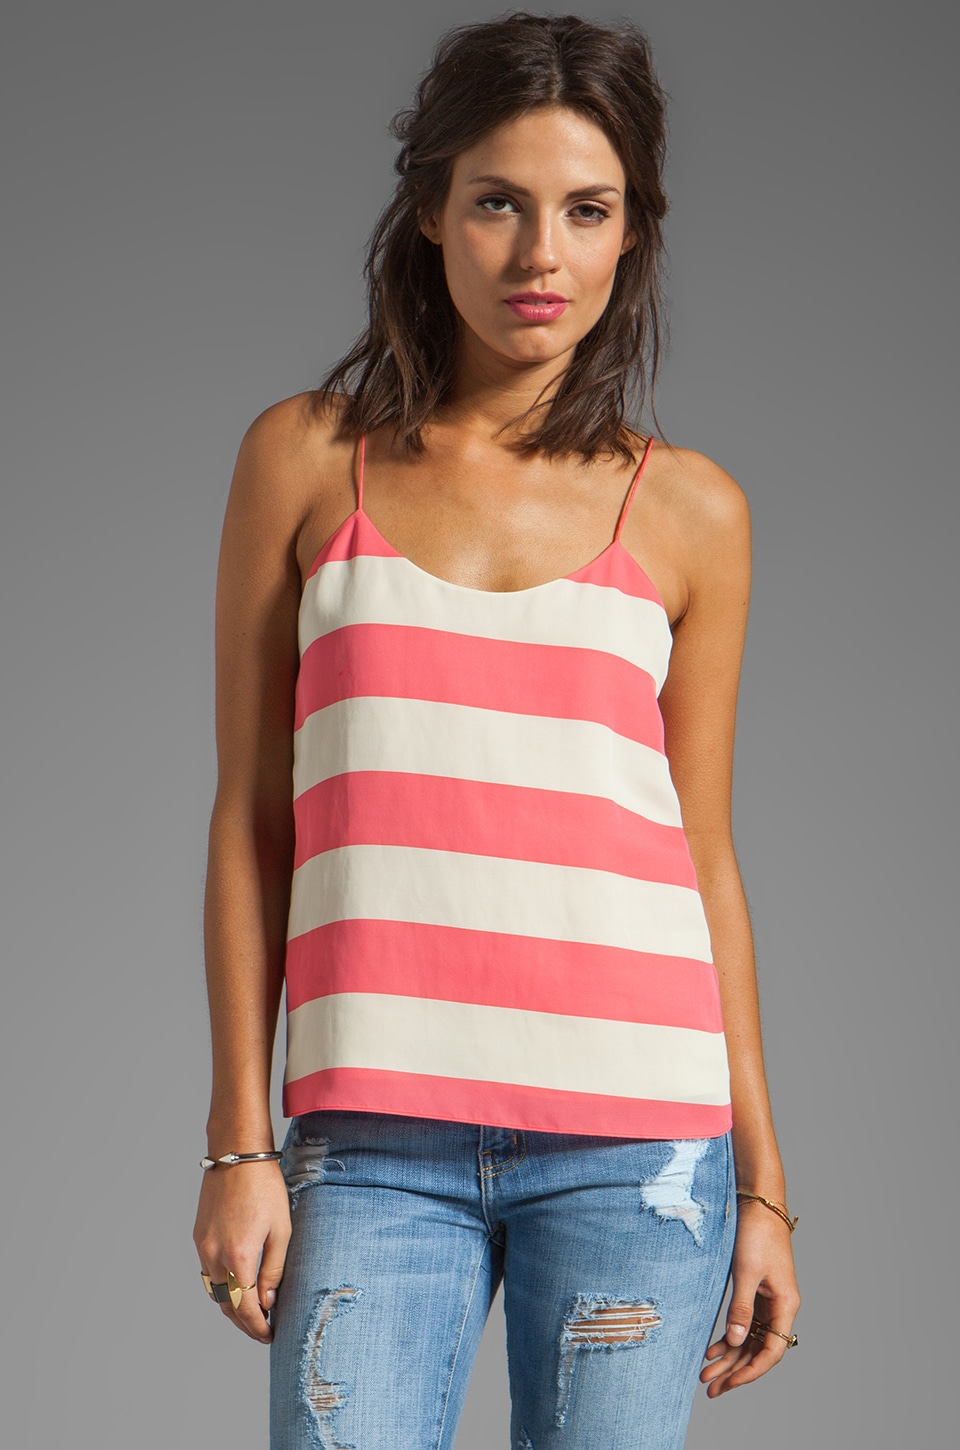 Tibi Striped Cami en Calypso Red/Tan Multi